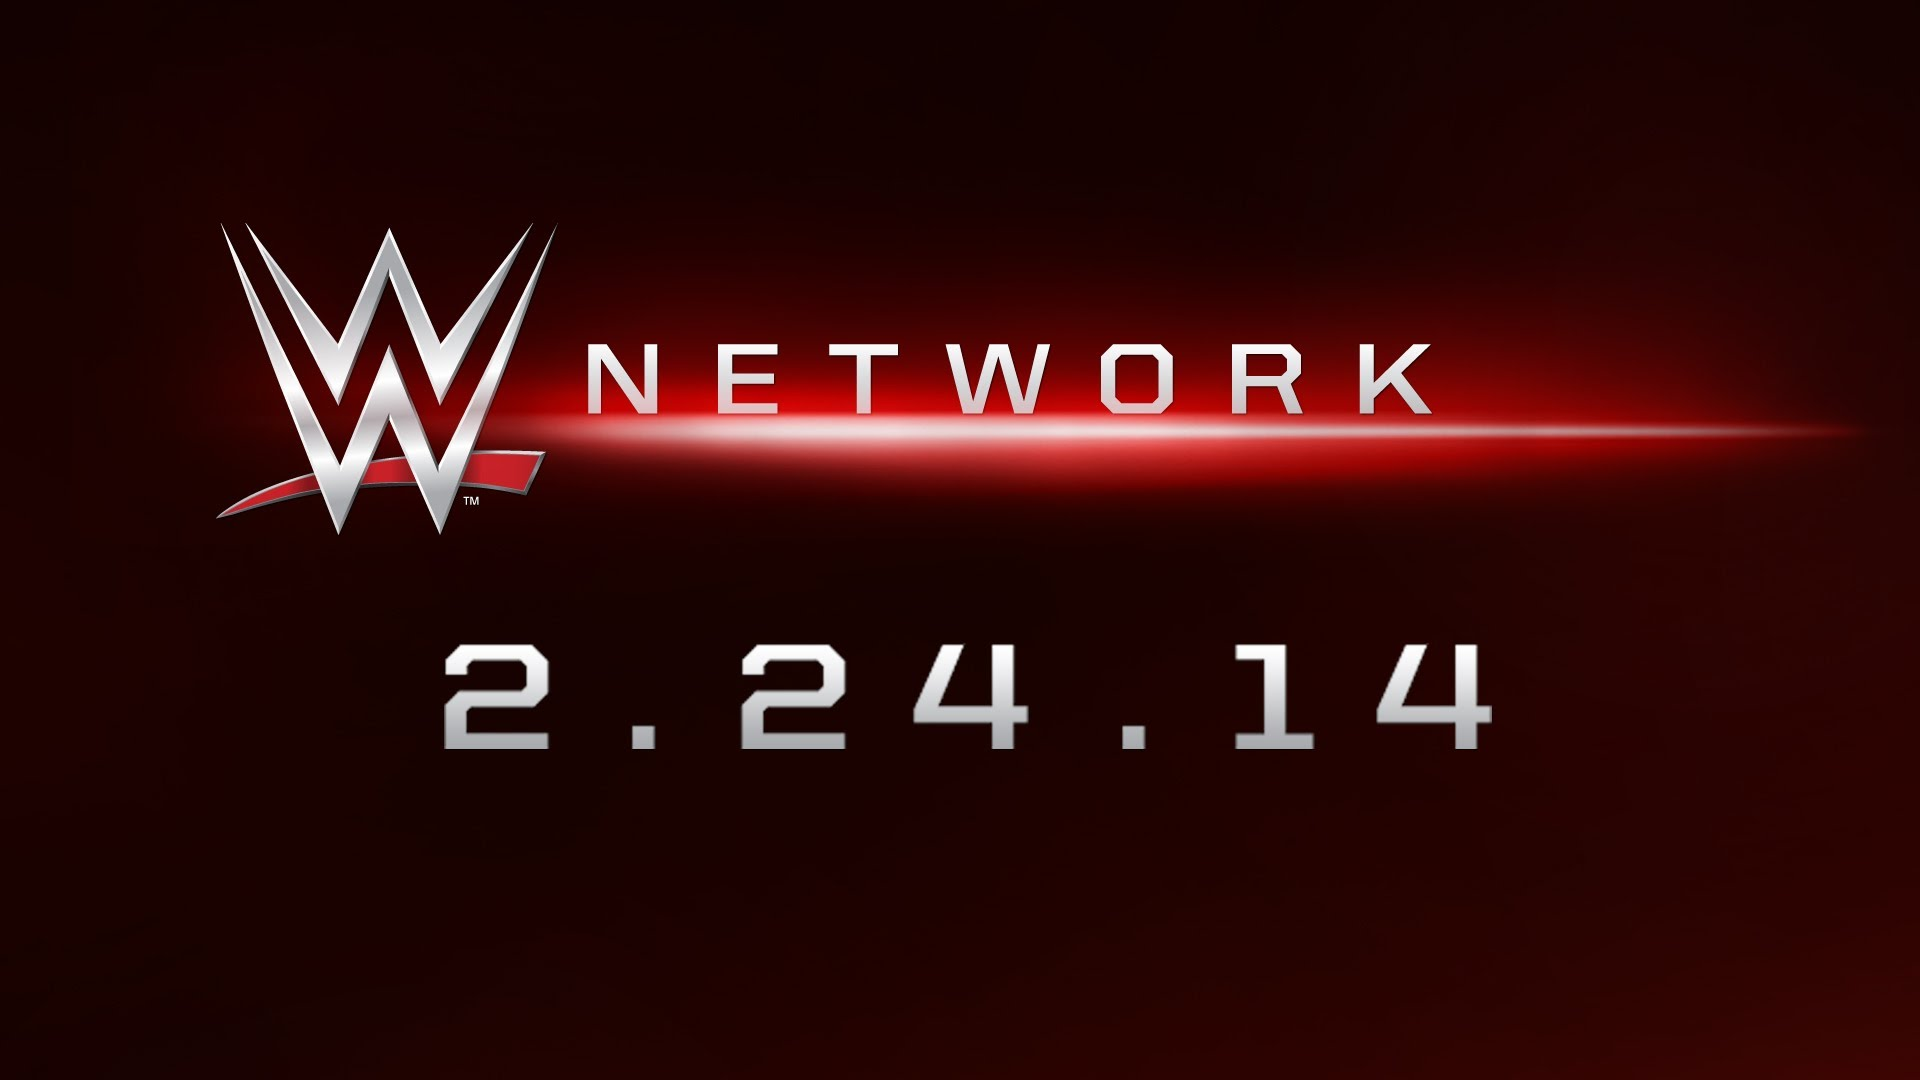 wwe network wallpaper gallery 1920 x 1080 · jpeg